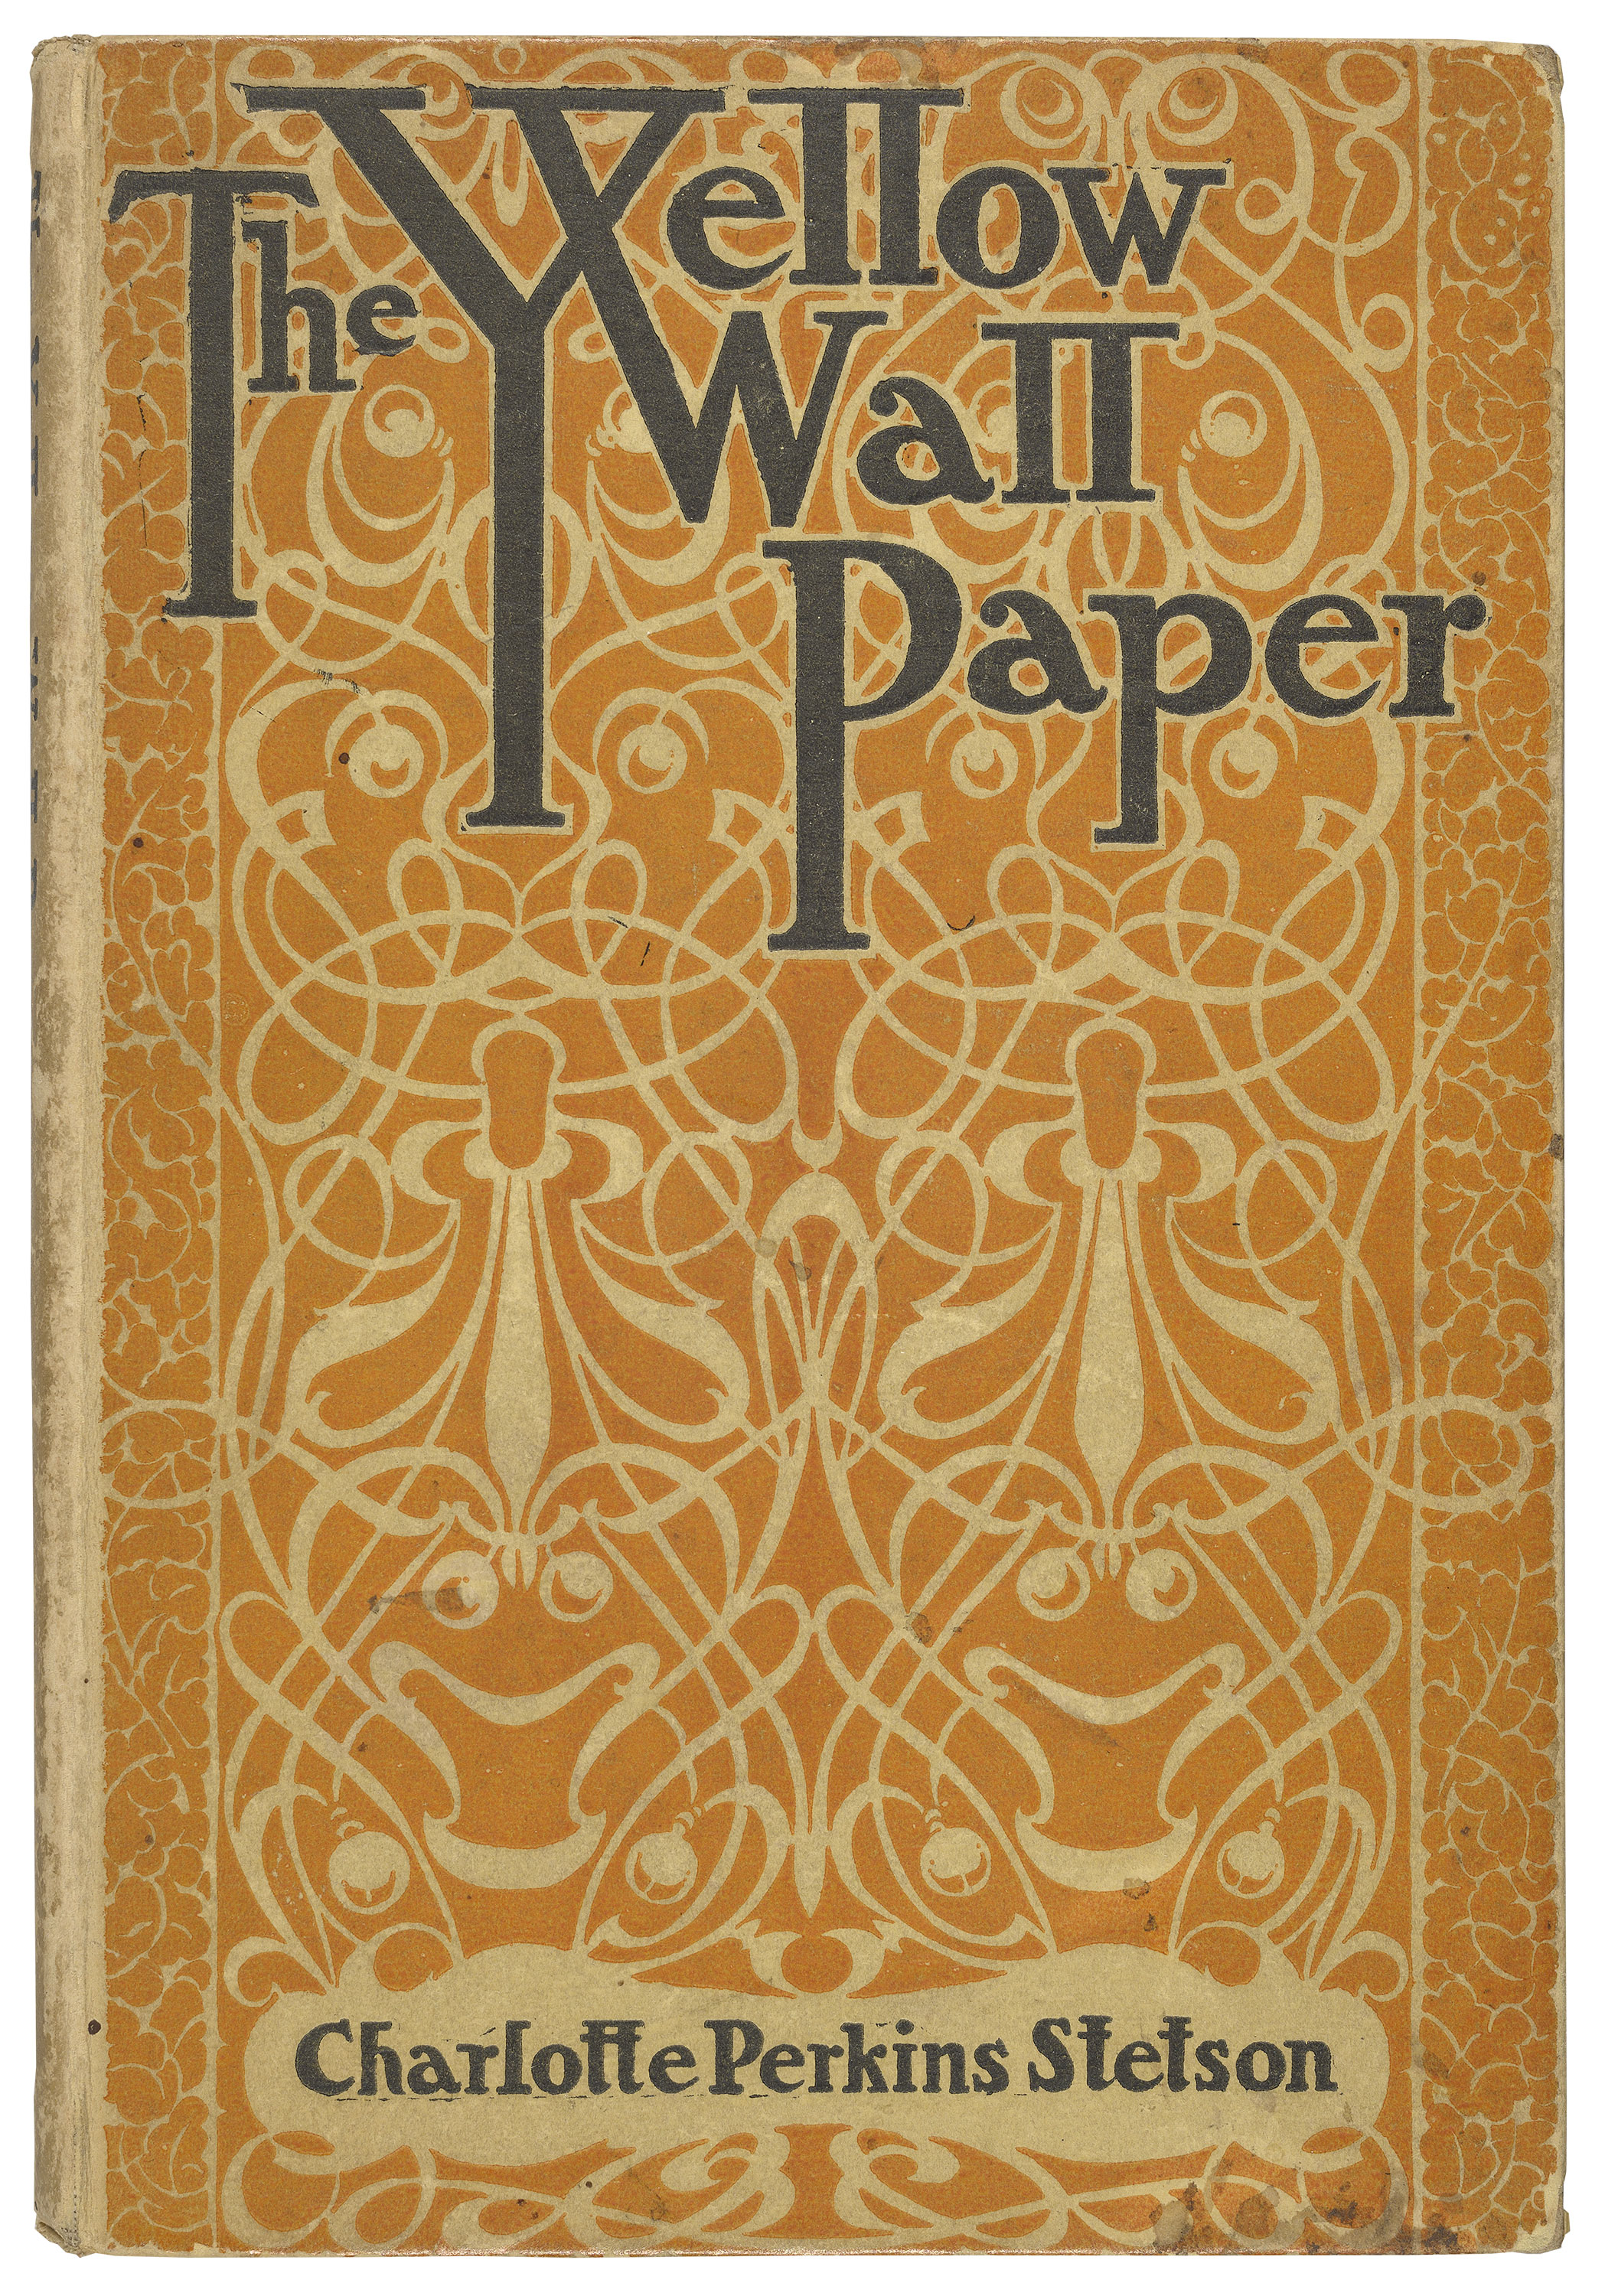 an analysis of the topic of the short story the yellow wallpaper by charlotte perkins gilman